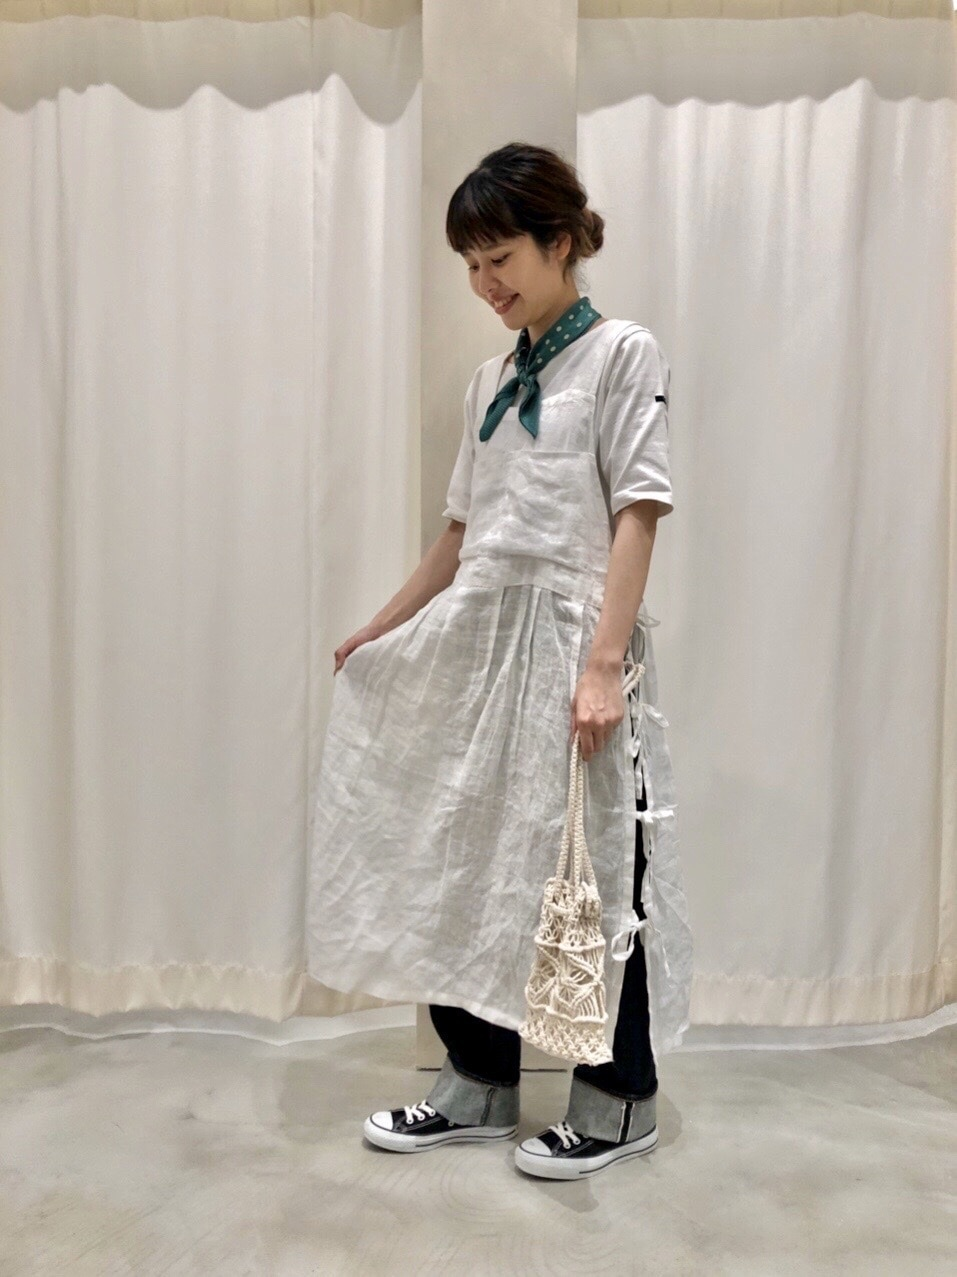 AMB SHOP CHILD WOMAN CHILD WOMAN , PAR ICI ルミネ横浜 身長:160cm 2020.06.09